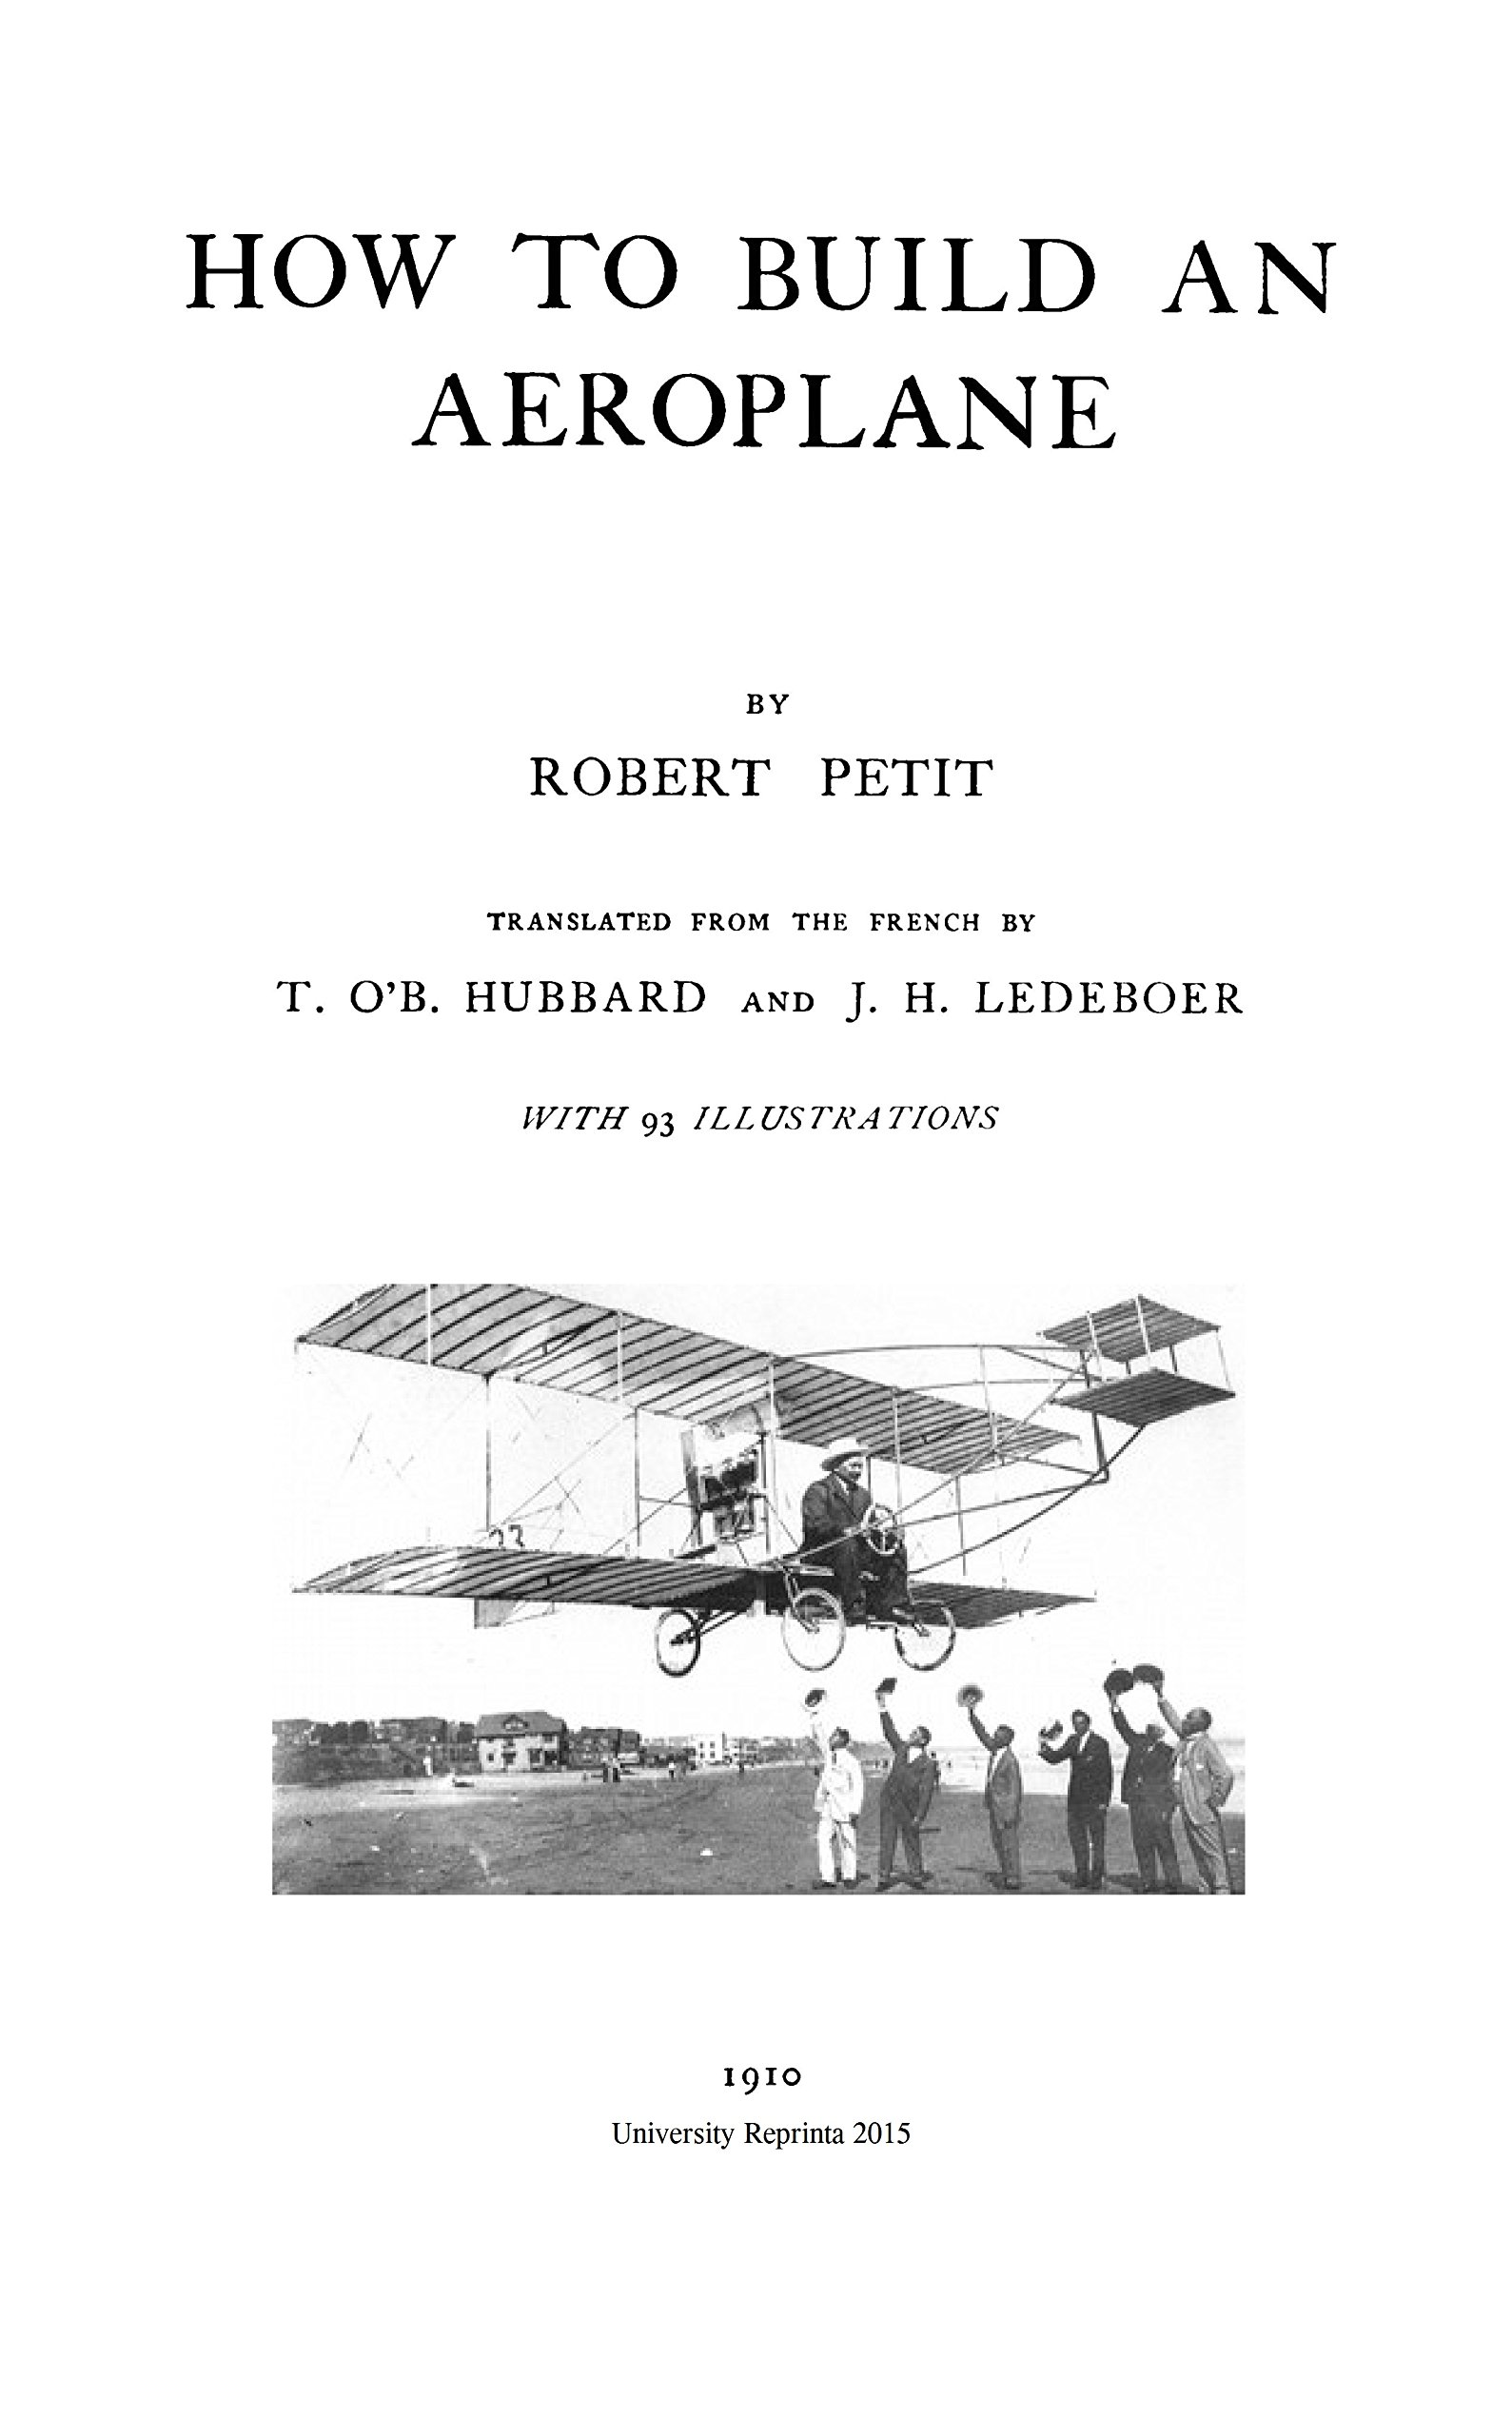 How to Build an Aeroplane (How to Build an Airplane) by Robert Petit [Student Loose Leaf Facsimile Edition. Re-Imaged from 1910 Original for Greater Clarity. 2015] pdf